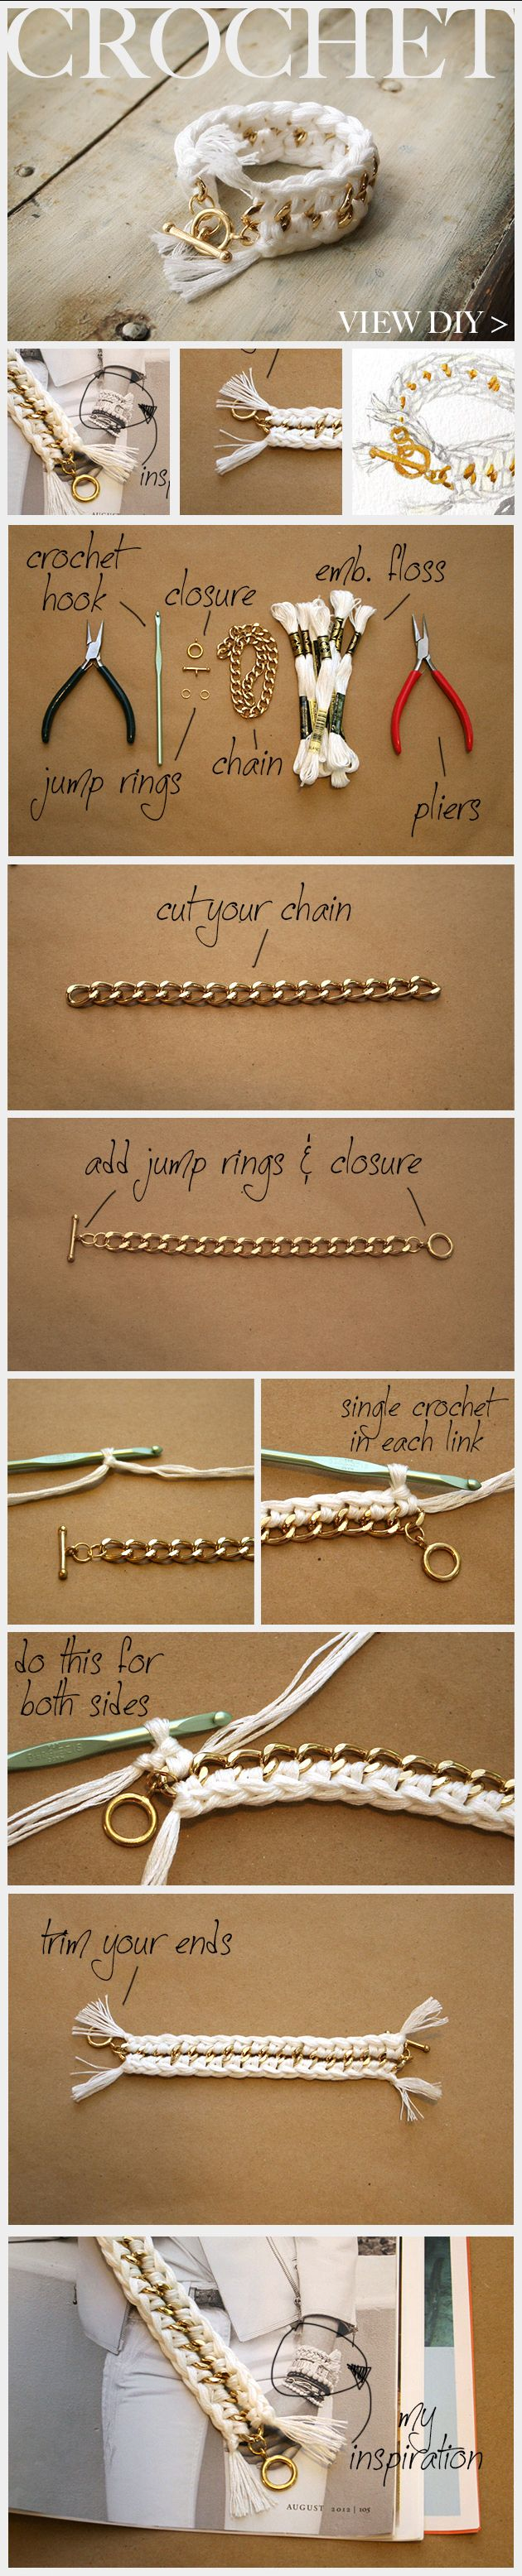 pulseira, I have the perfect chain for this already and  a neckace too! oh so excited and inspired! <3